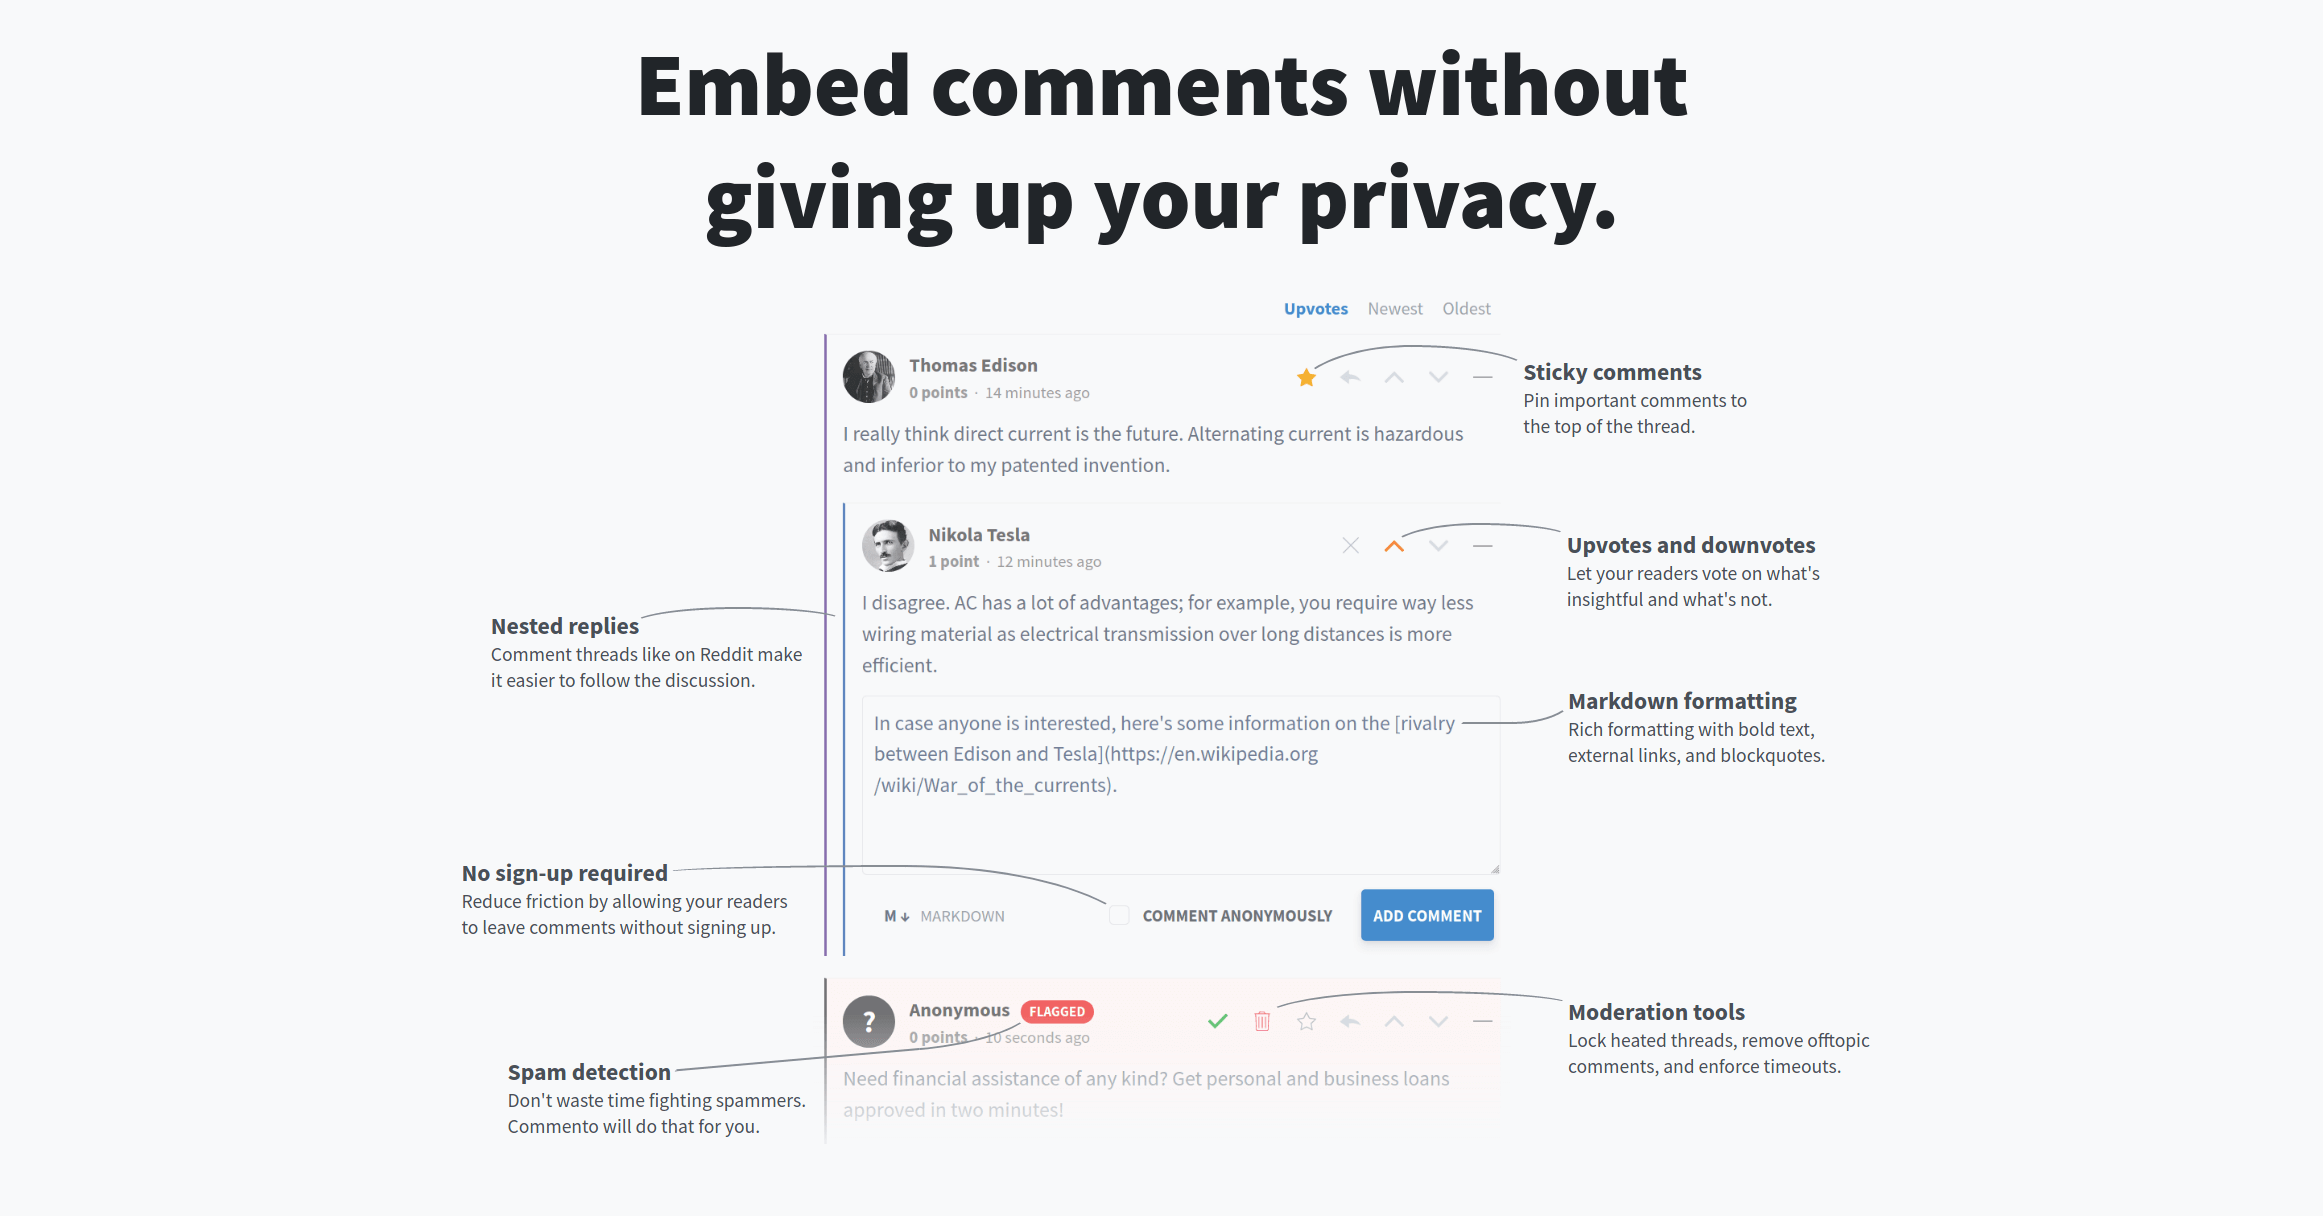 Commento: A fast, privacy-focused commenting platform